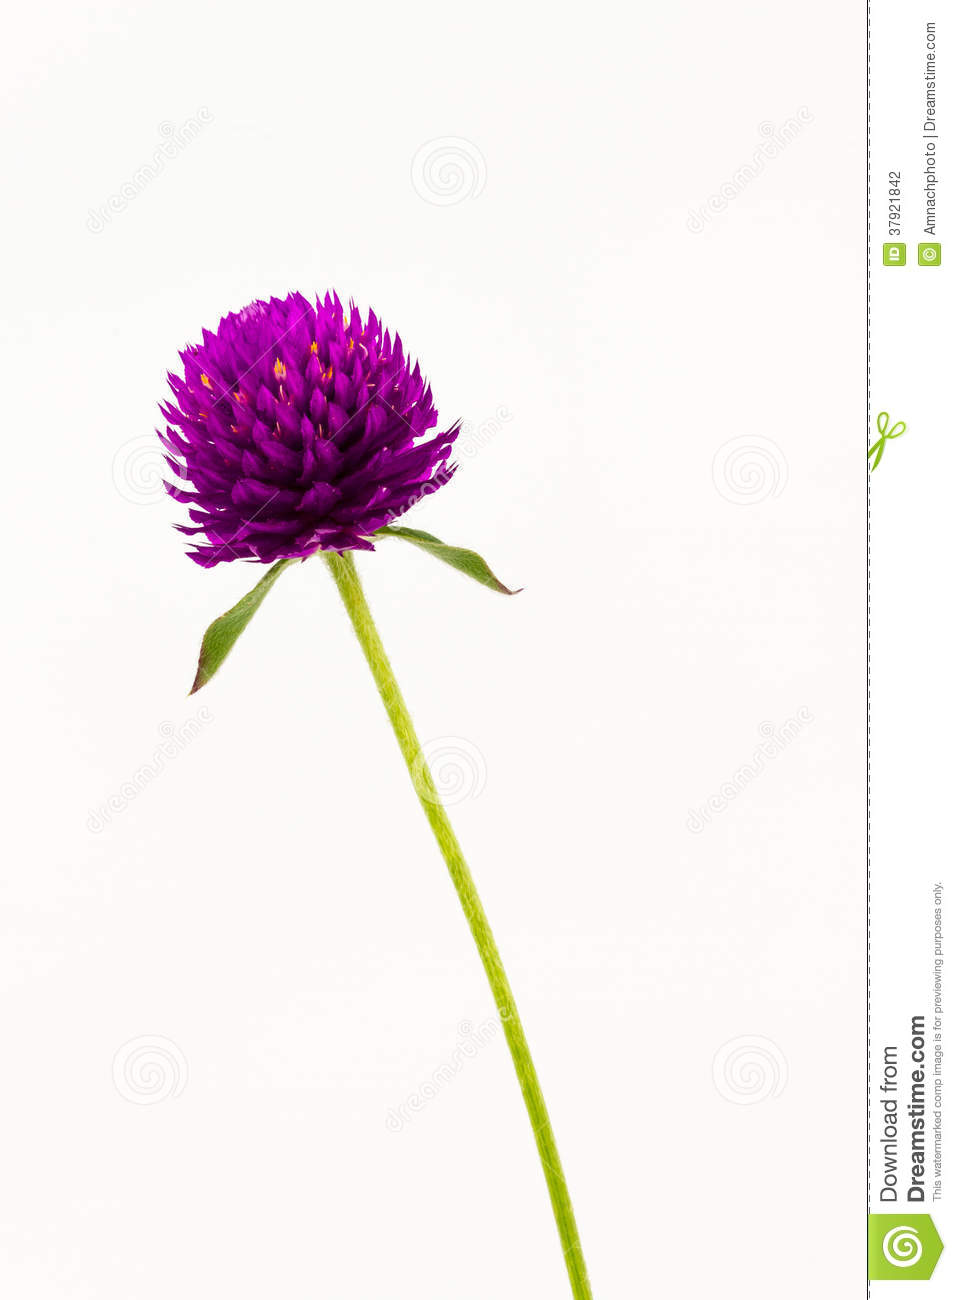 Plant Illustration Png